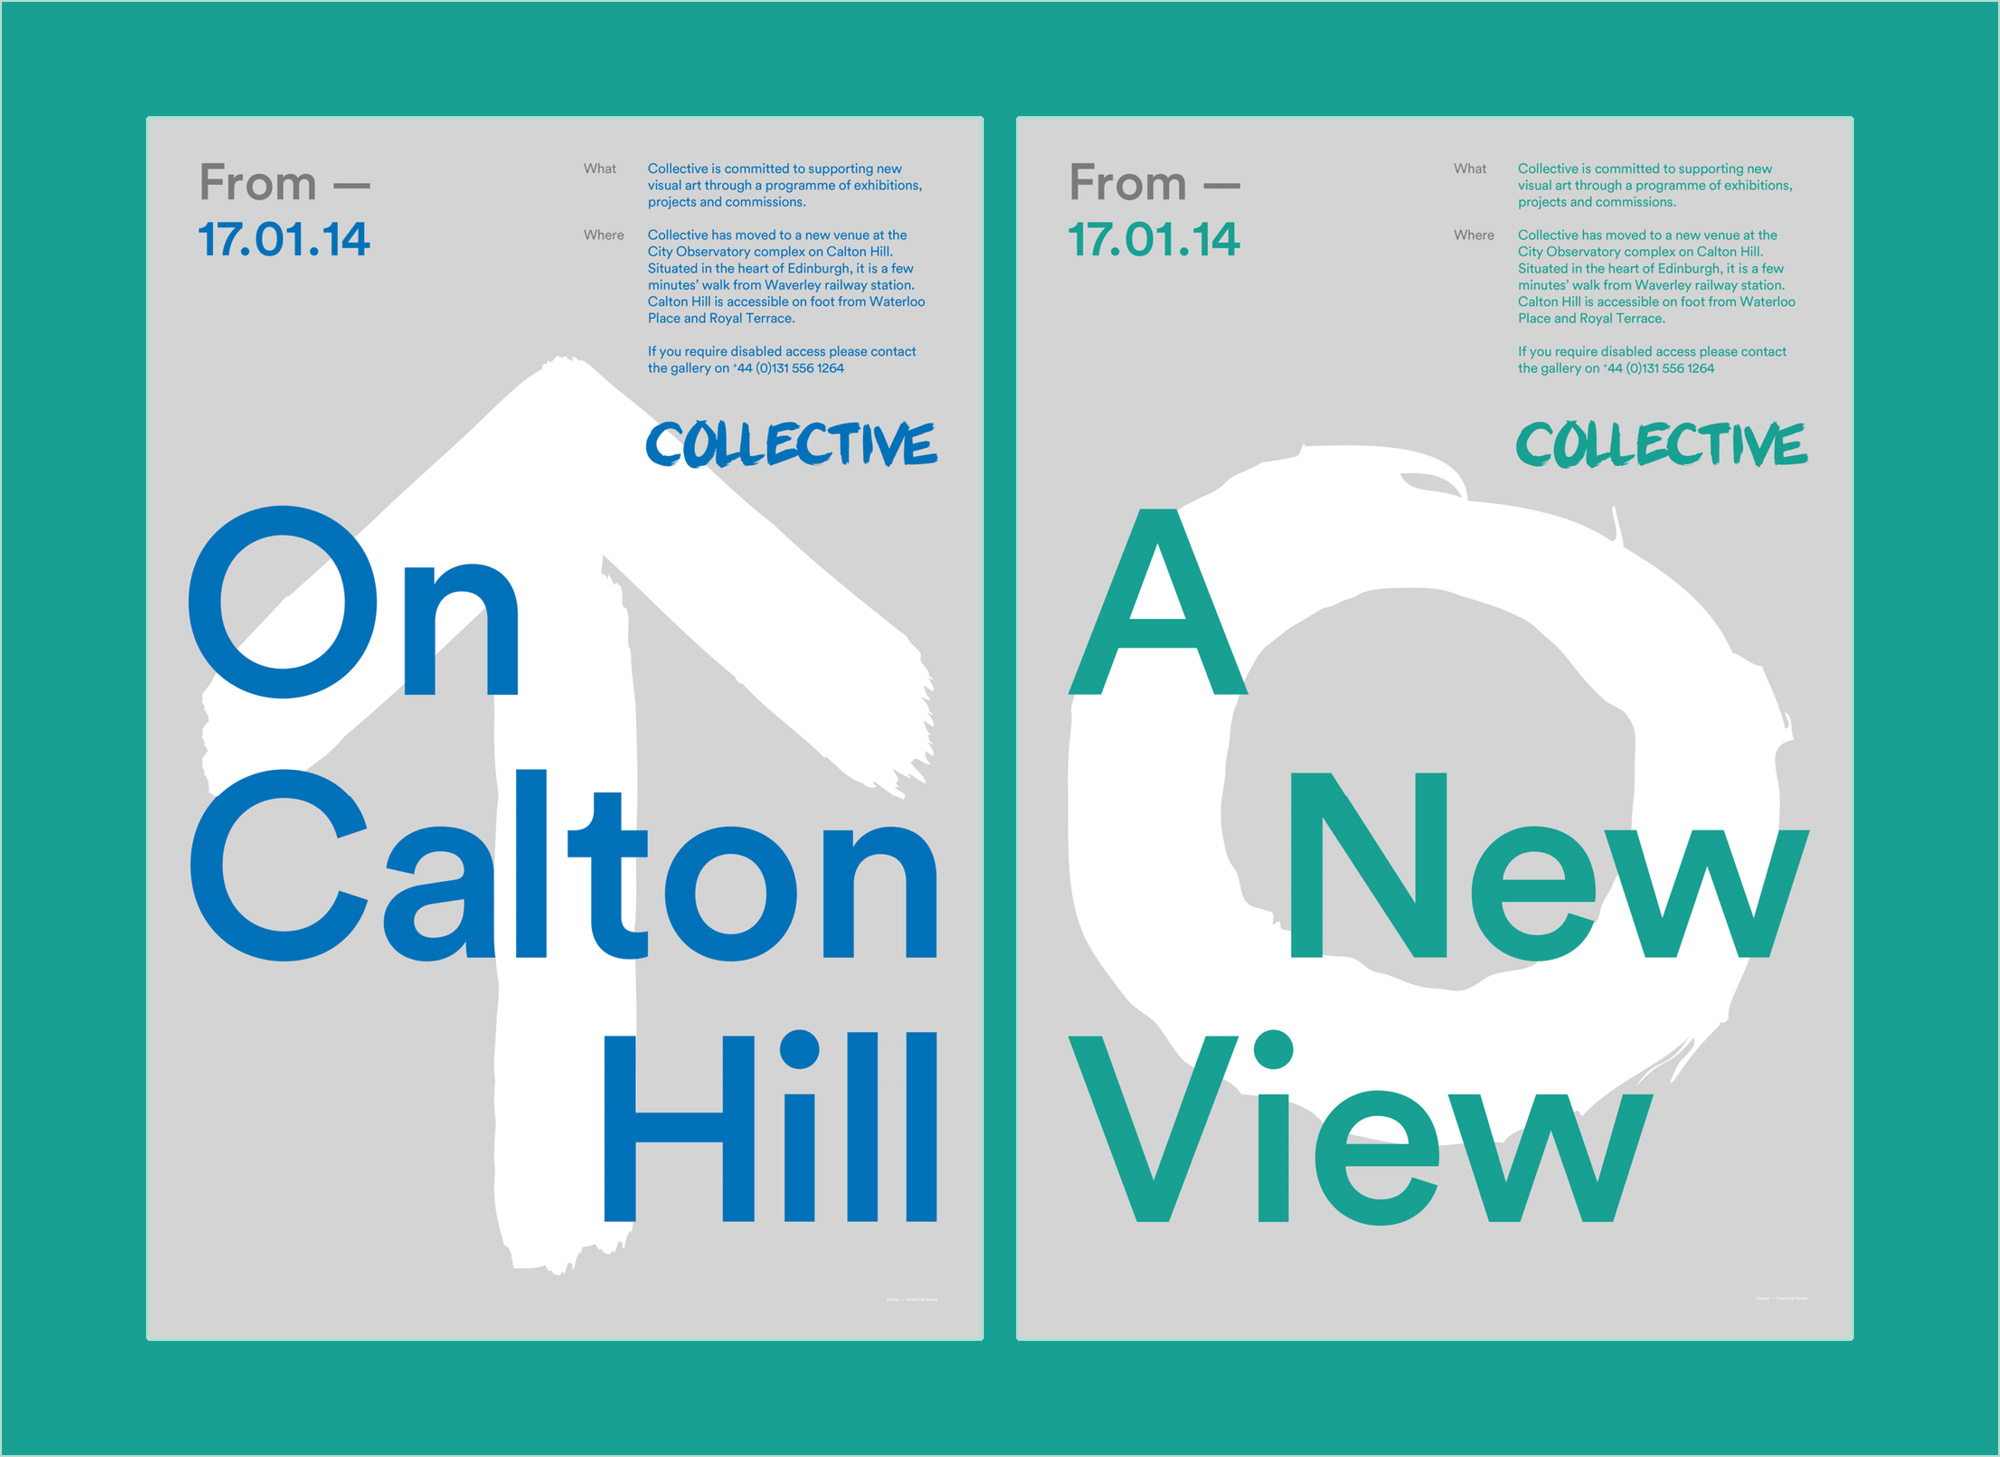 Two poster designs for Collective Gallery